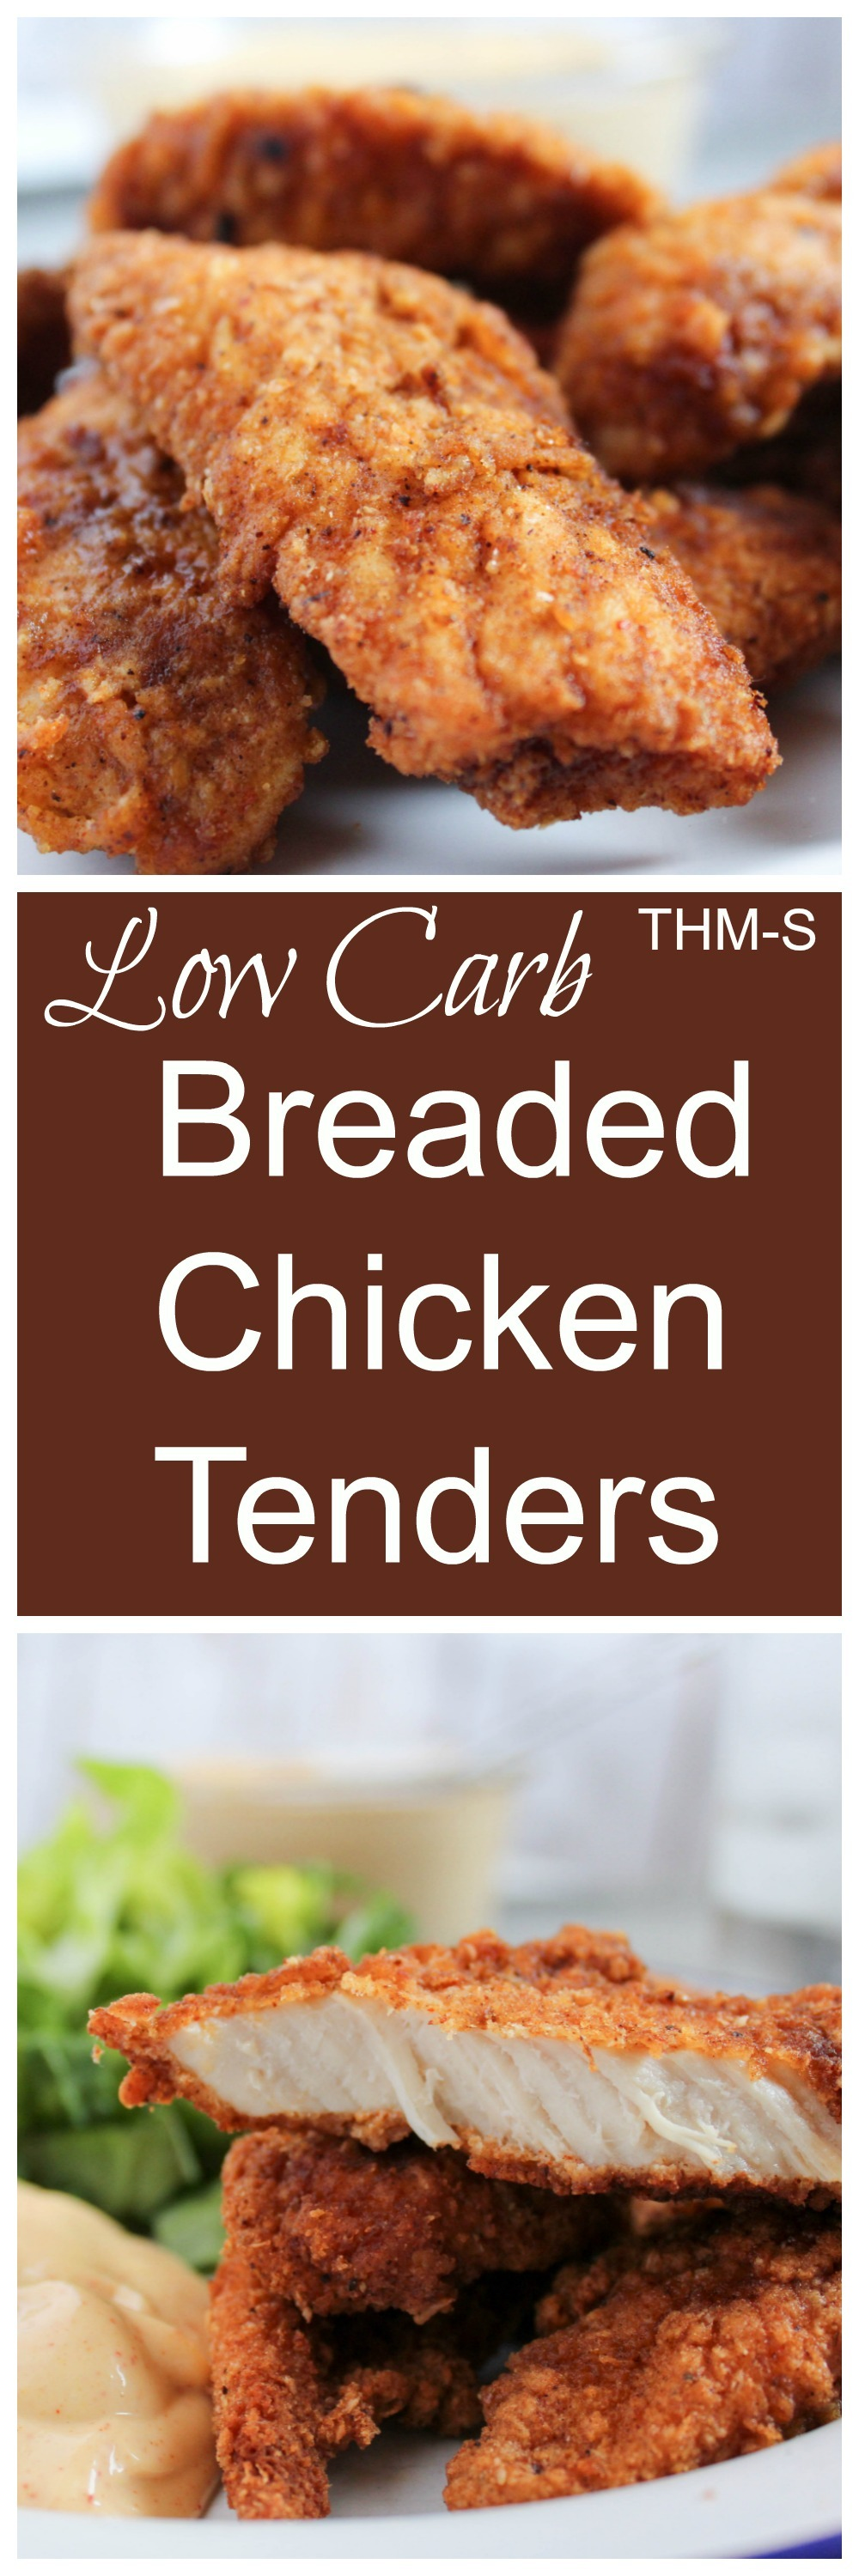 Restaurant Style Breaded Chicken Tenders (Low Carb, THM-S)